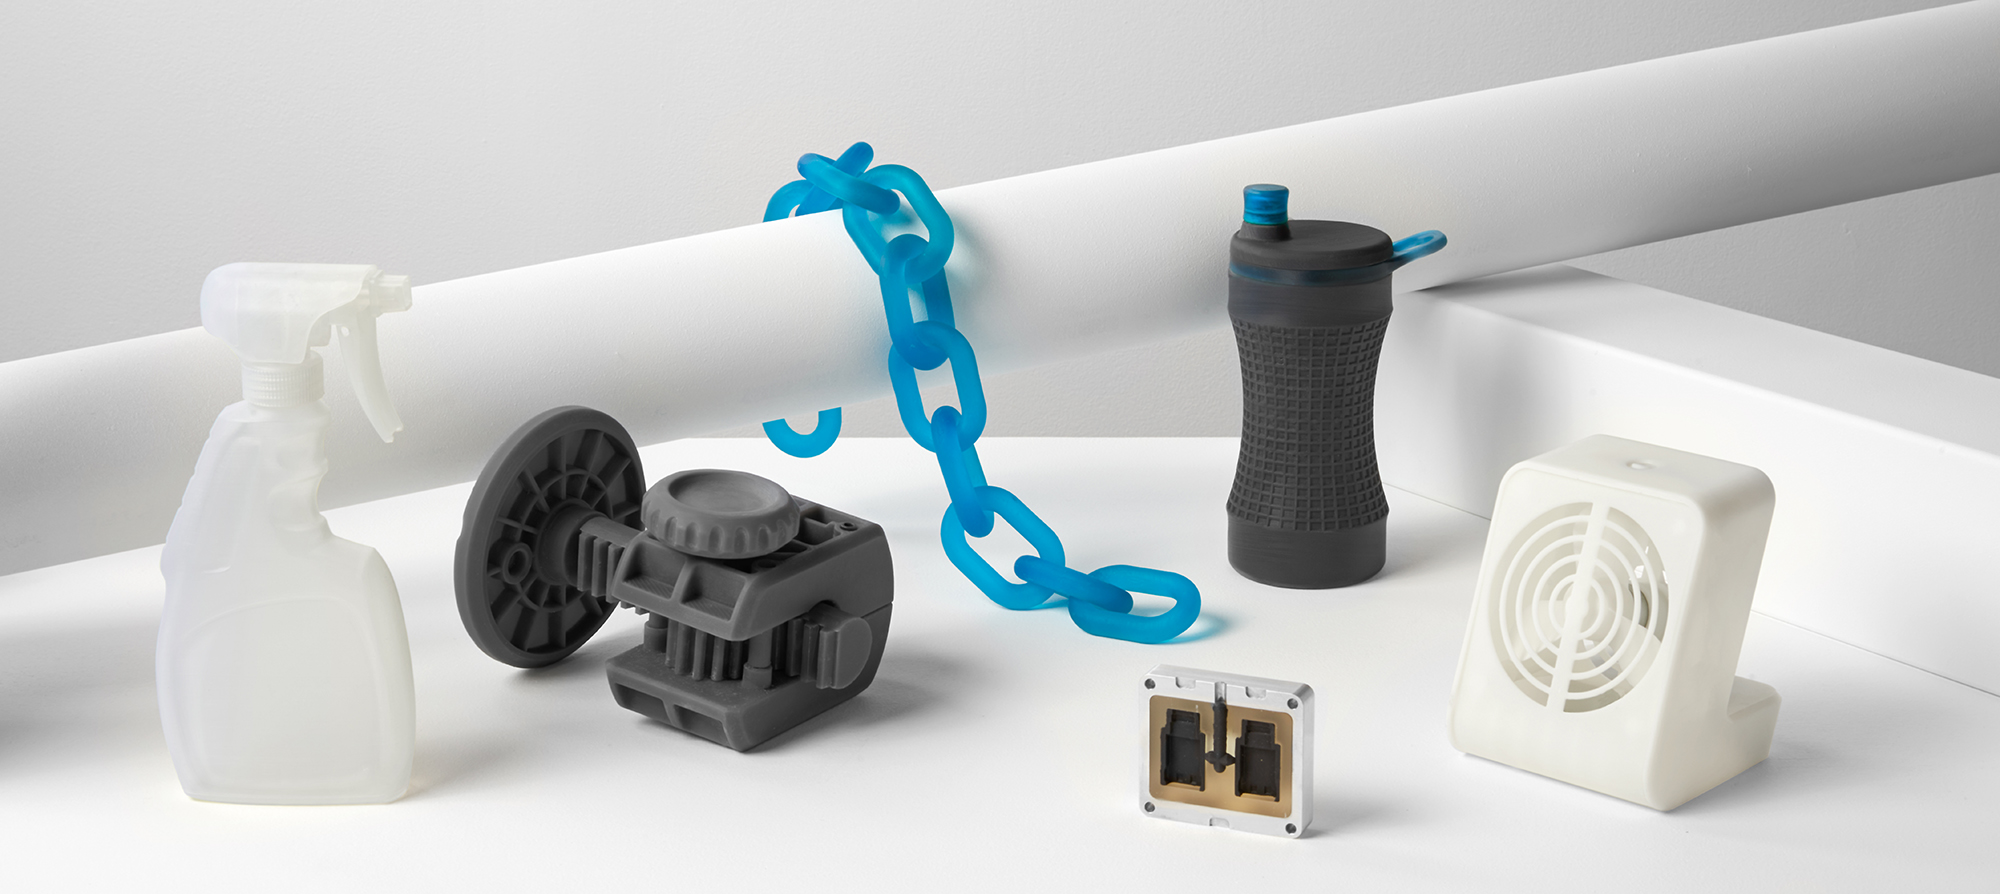 A variety of parts 3D printed in Formlabs Engineering Resins